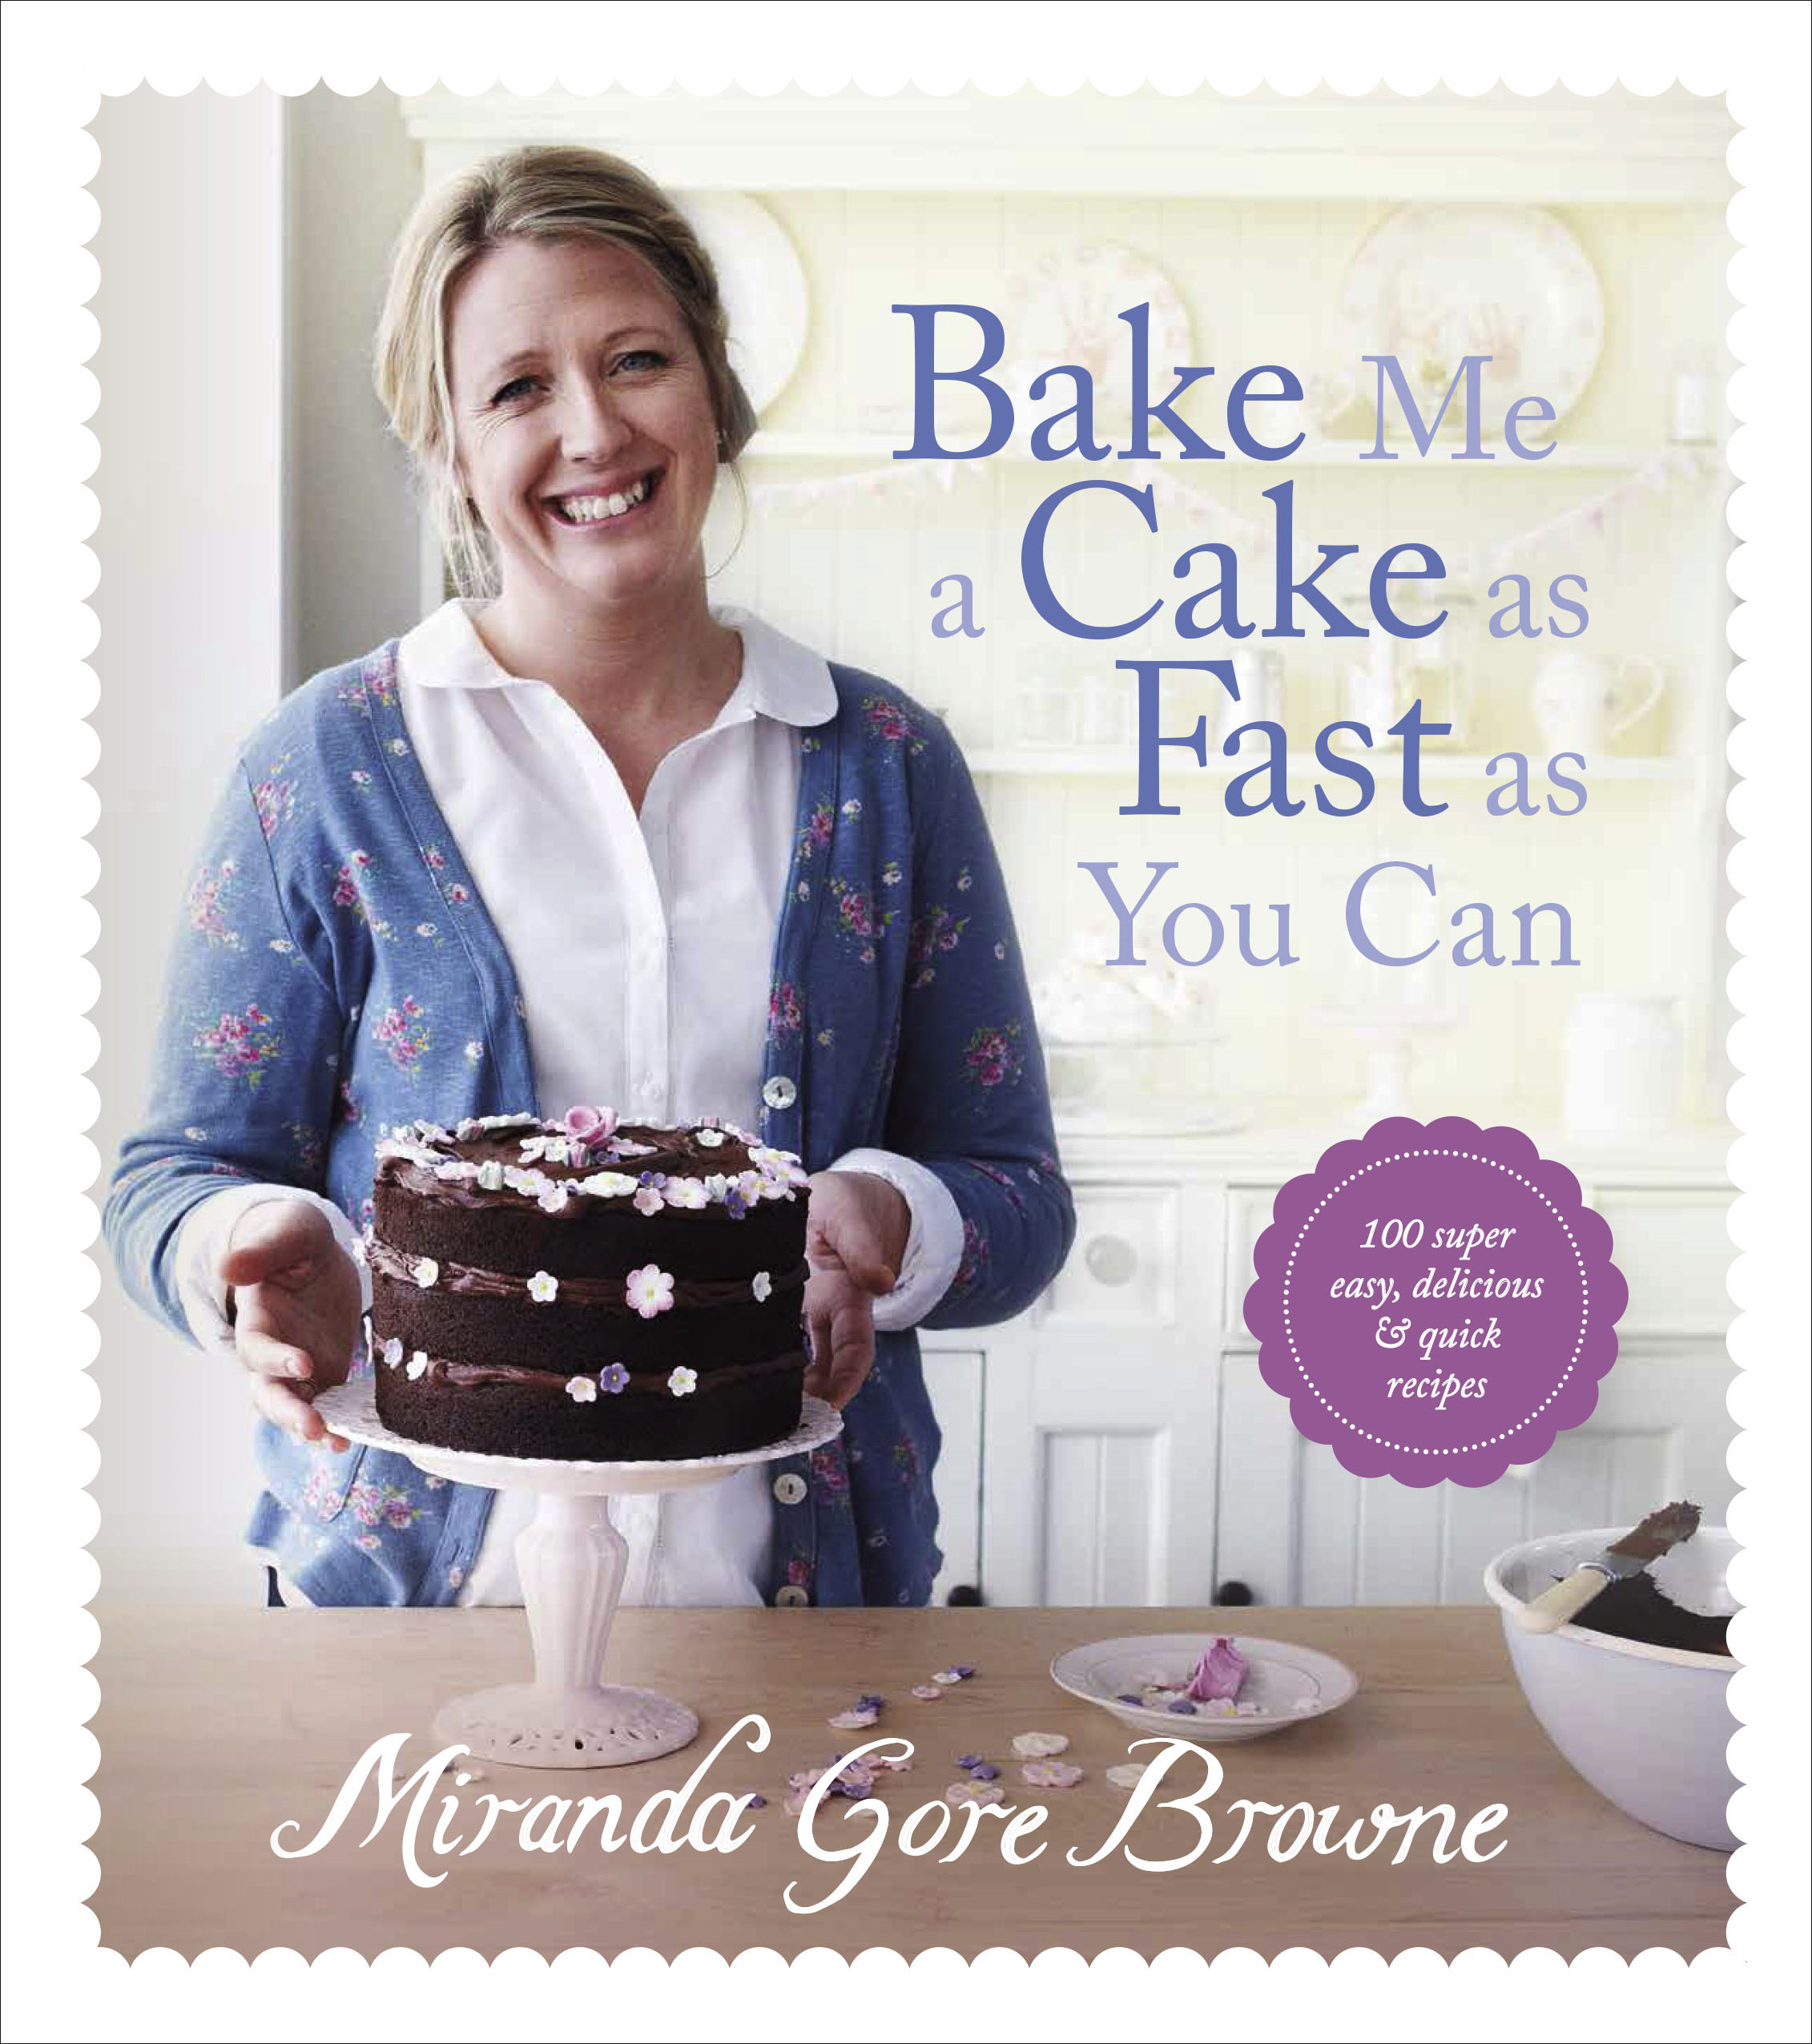 Bake Me a Cake as Fast as You Can Over 100 super easy,  fast and delicious recipes